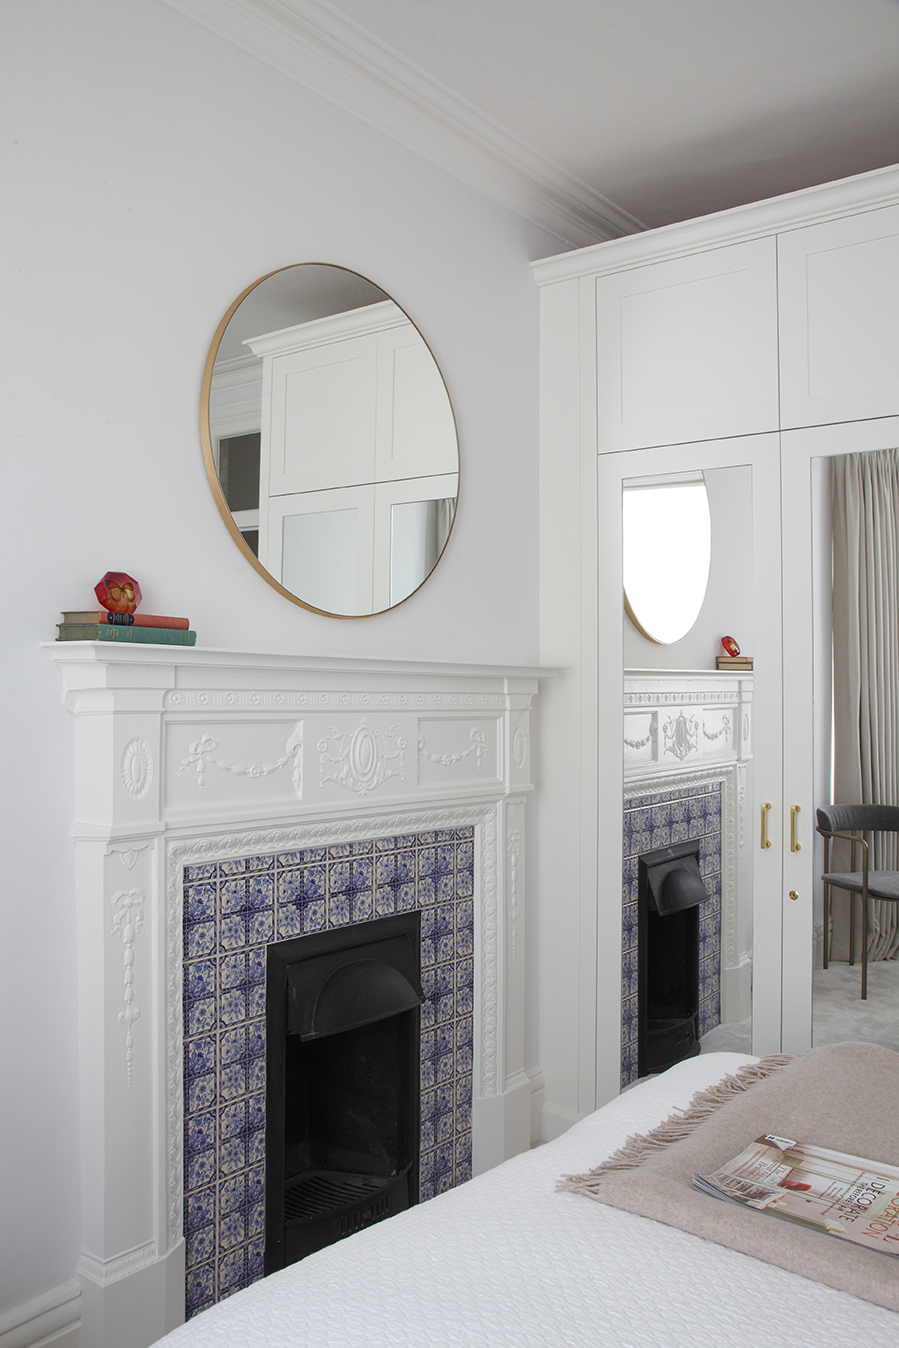 NW1 - Guest bedroom - fireplace & joinery shot-LO.jpg